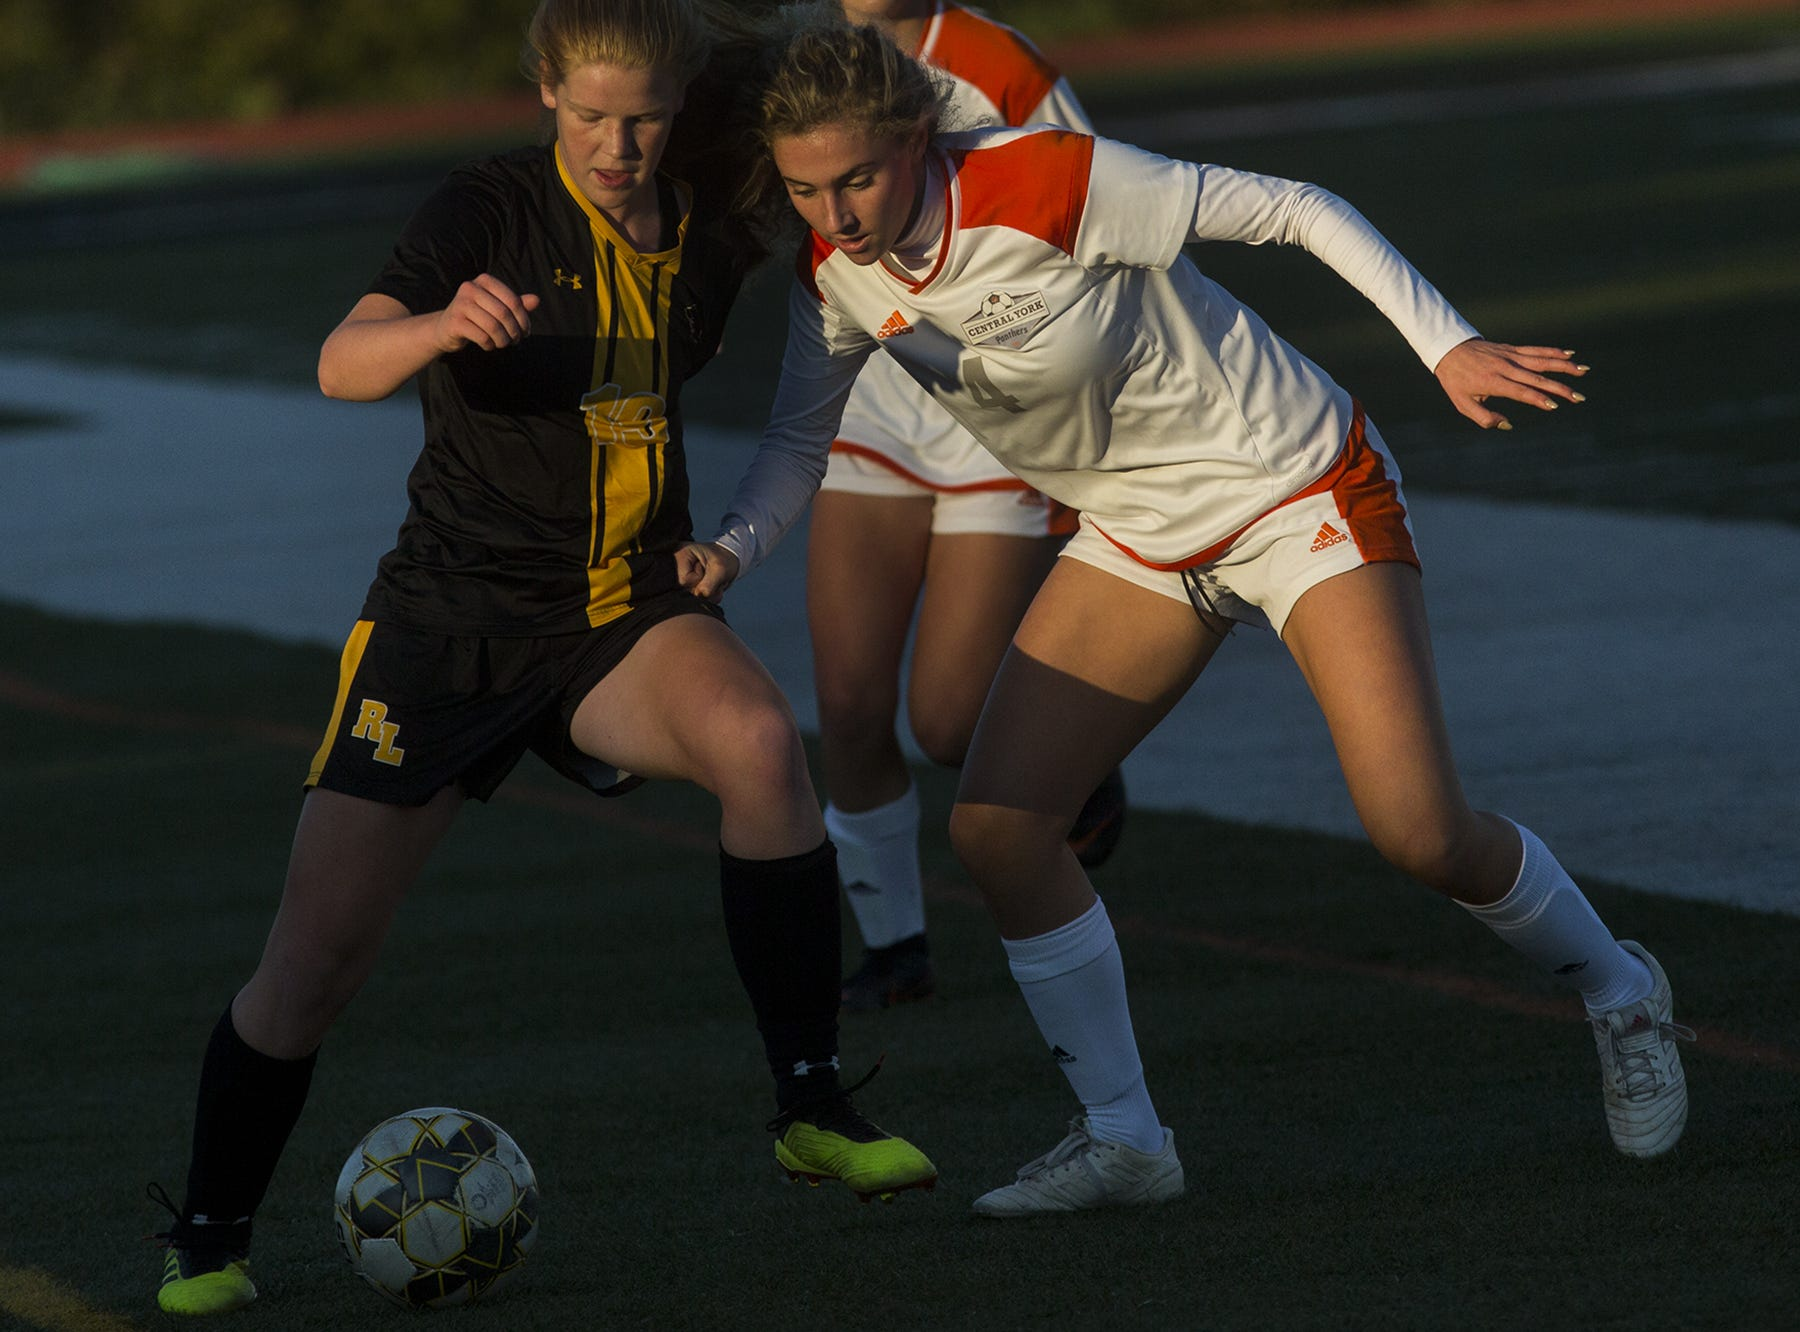 Red Lion's Anna Gatchell, left, and Central York's Anya Schnetzka compete for the ball. Central York defeats Red Lion 1-0 in the YAIAA girls' soccer championship game at Northeastern High School in Manchester, Saturday, October 20, 2018.